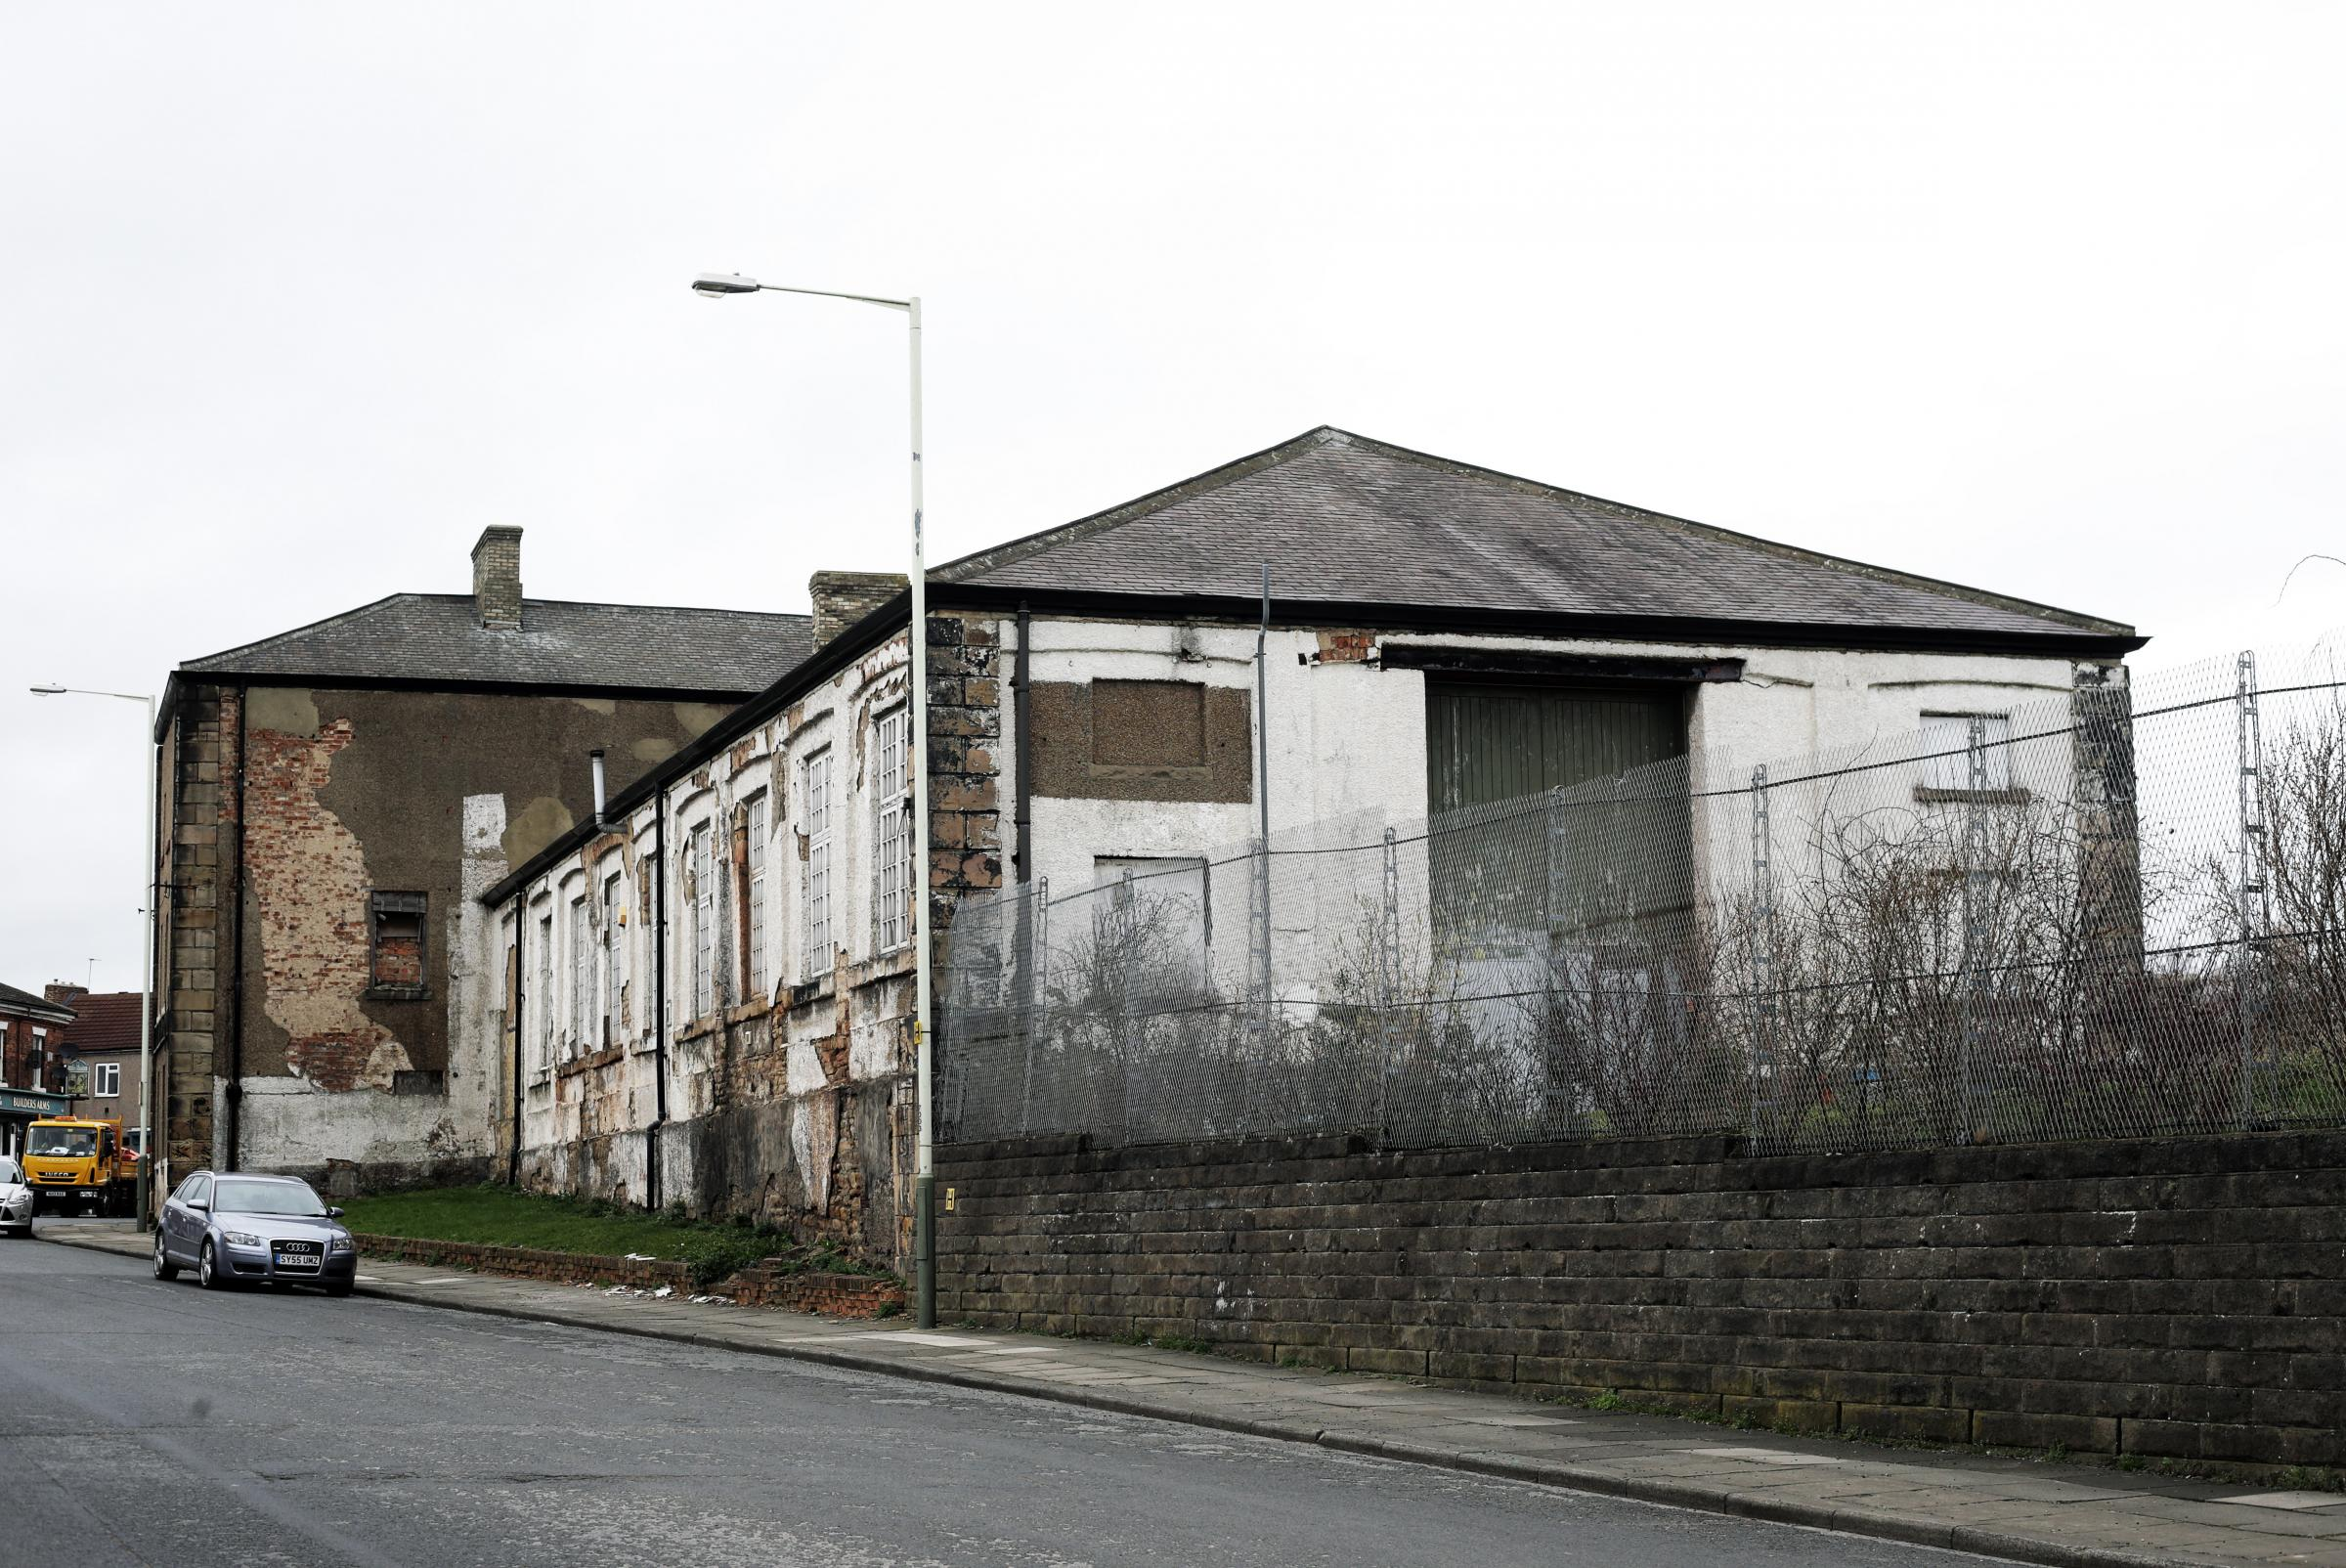 Councillors asked to approve £150,000 to repair the Hopetown Carriageworks